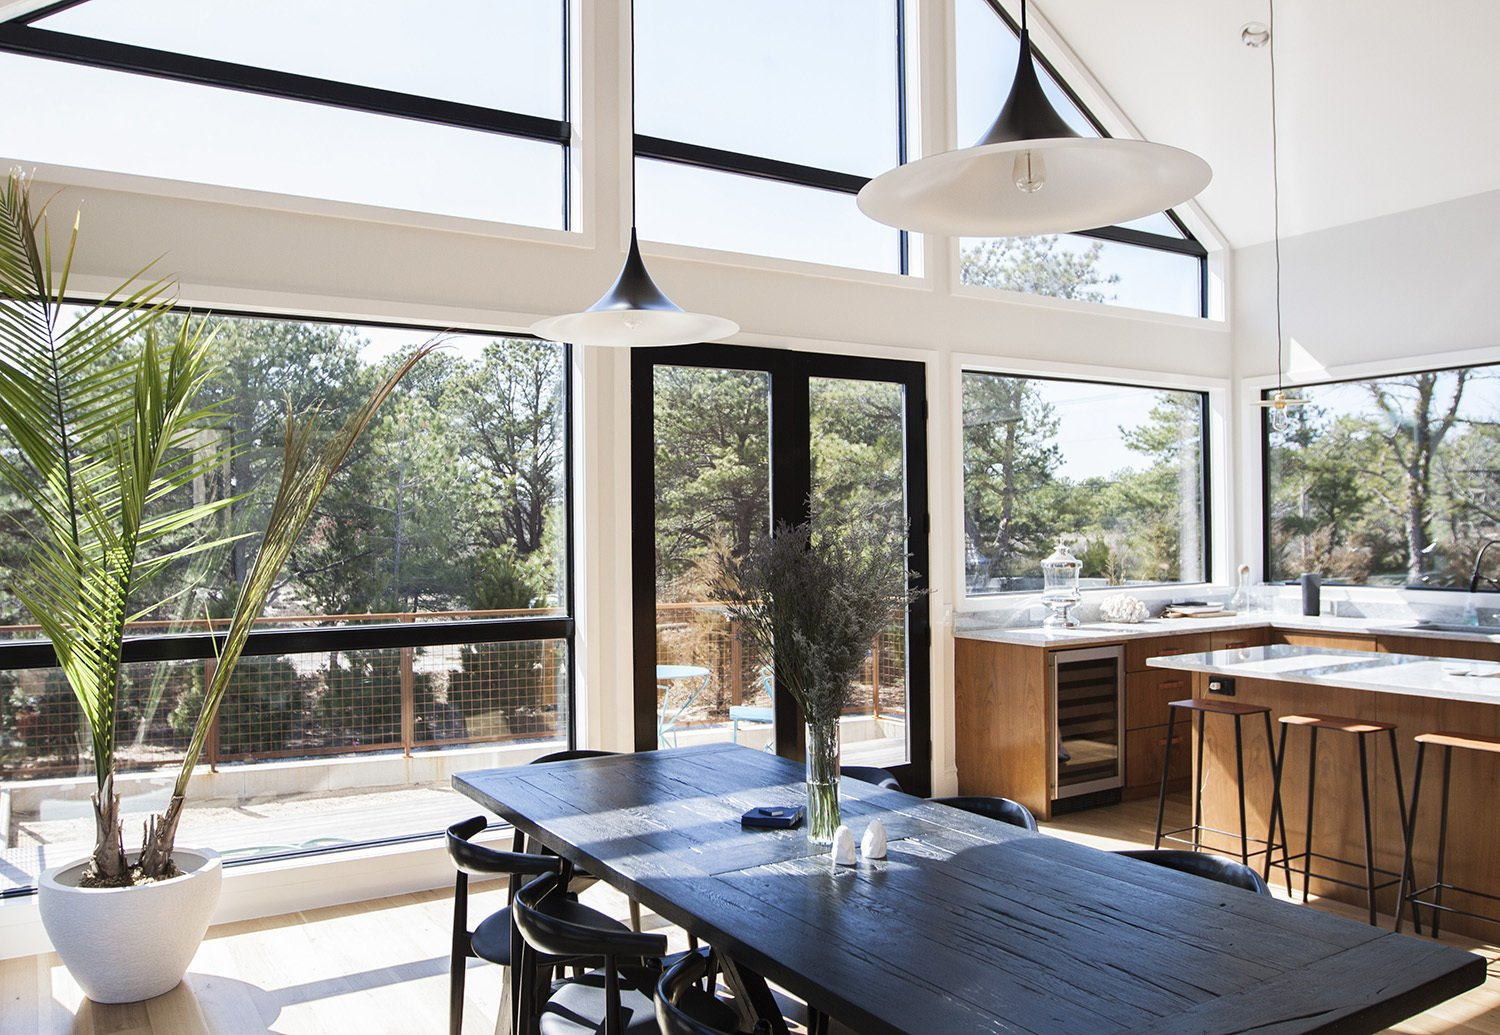 The interior features 16-foot pitched ceilings.